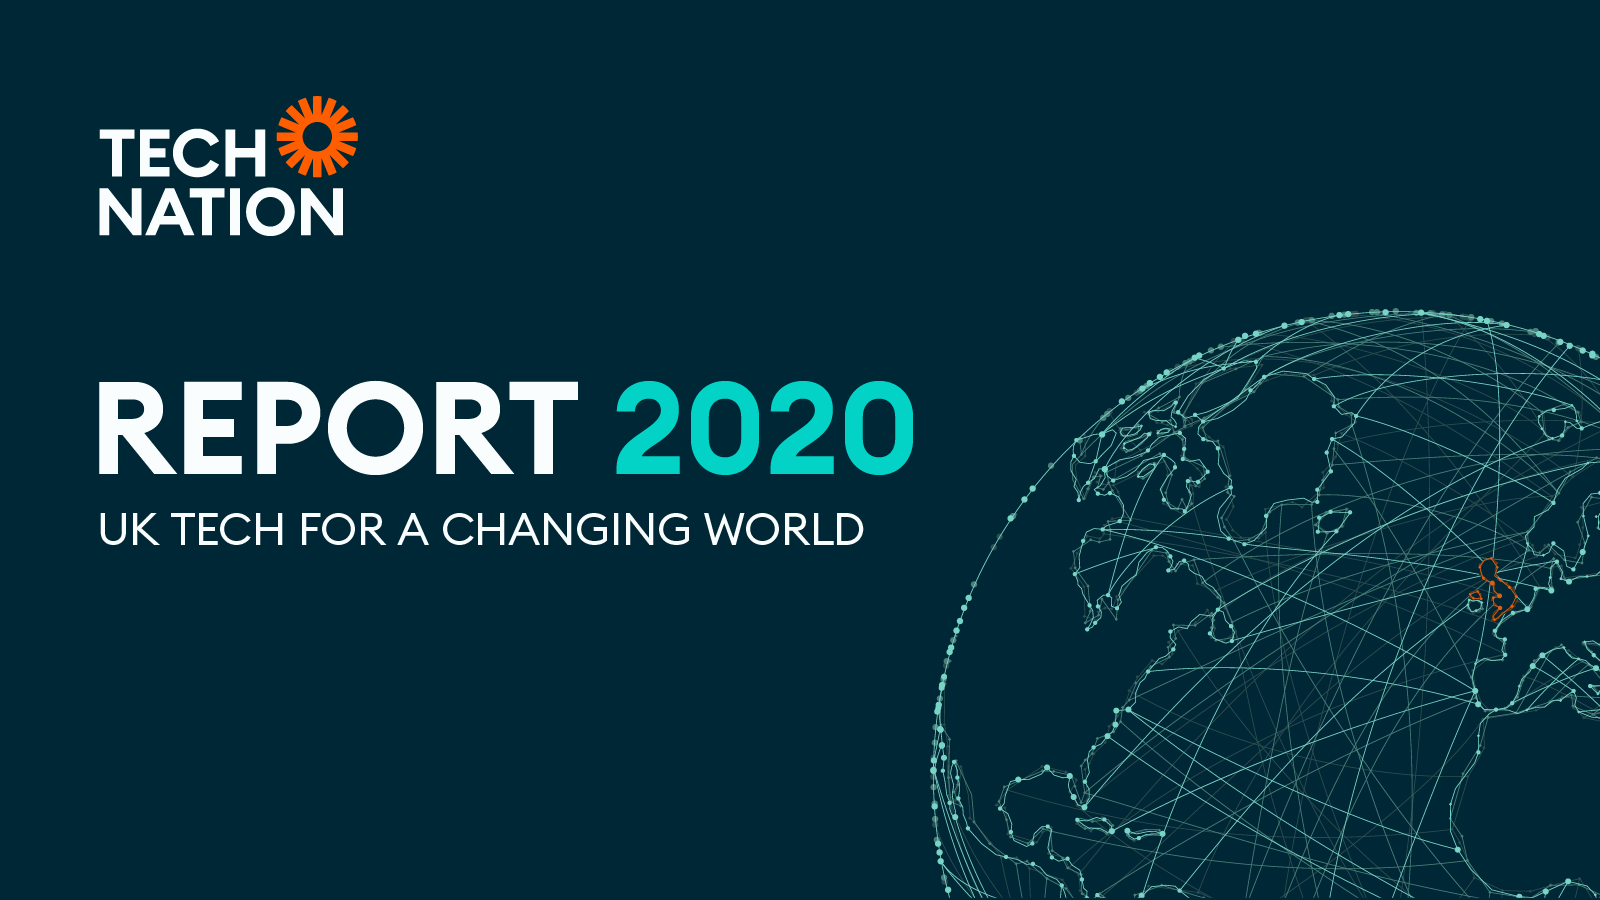 R3 IoT Spotlighted in Tech Nation 2020 Report